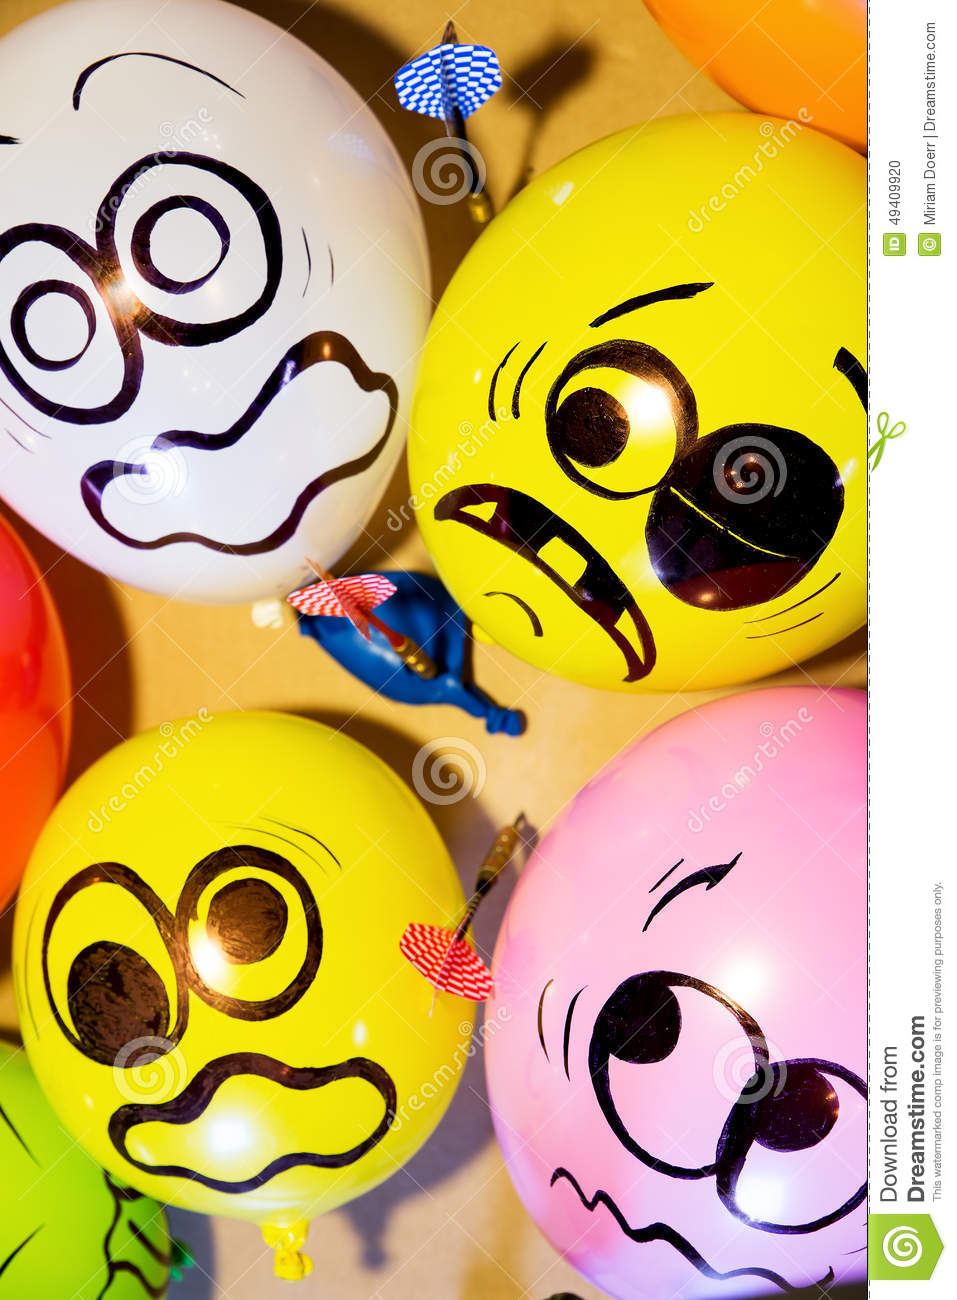 Funny Balloon Faces